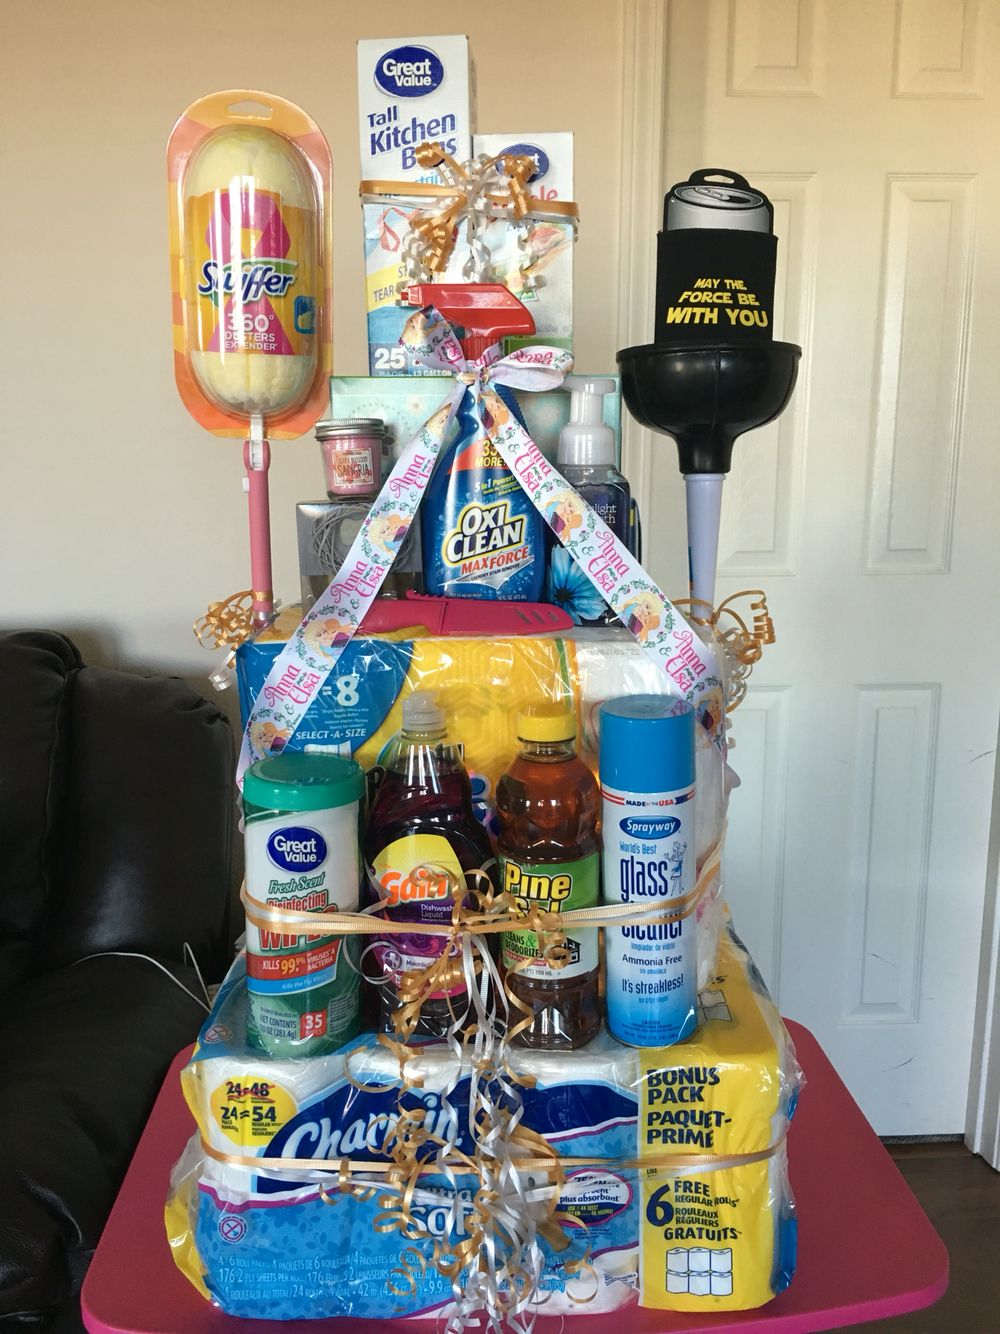 House Warming Gift With Some Personal Touches For The Couple You Can Never Go Wrong With House Warming Gift Diy Housewarming Gift Baskets House Warming Gifts